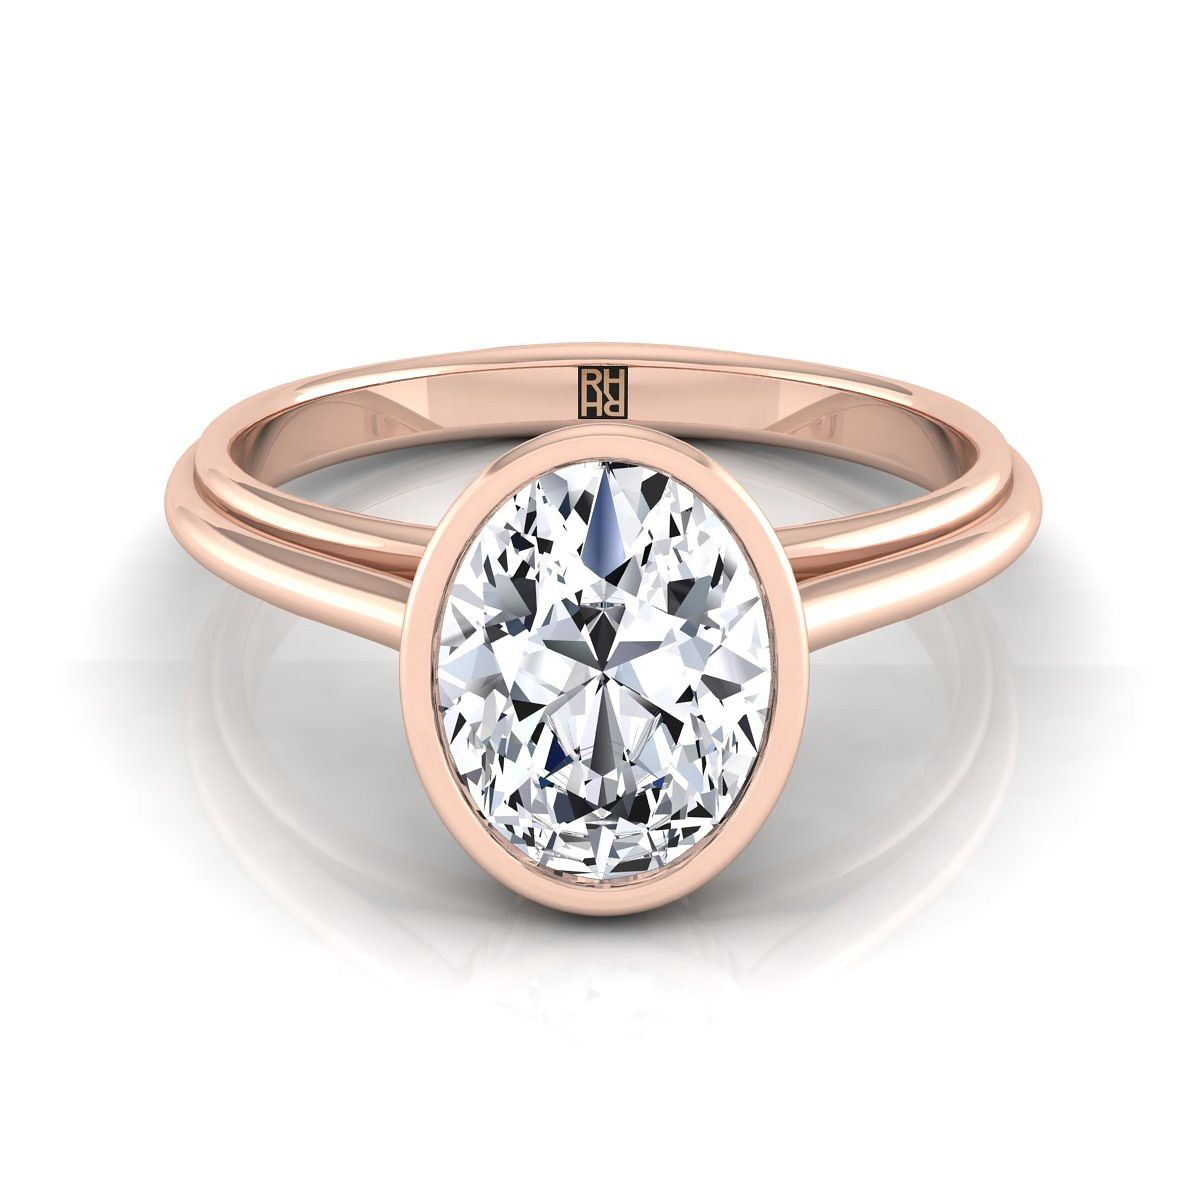 Oval diamond bezel solitaire engagement ring in k rose gold rose